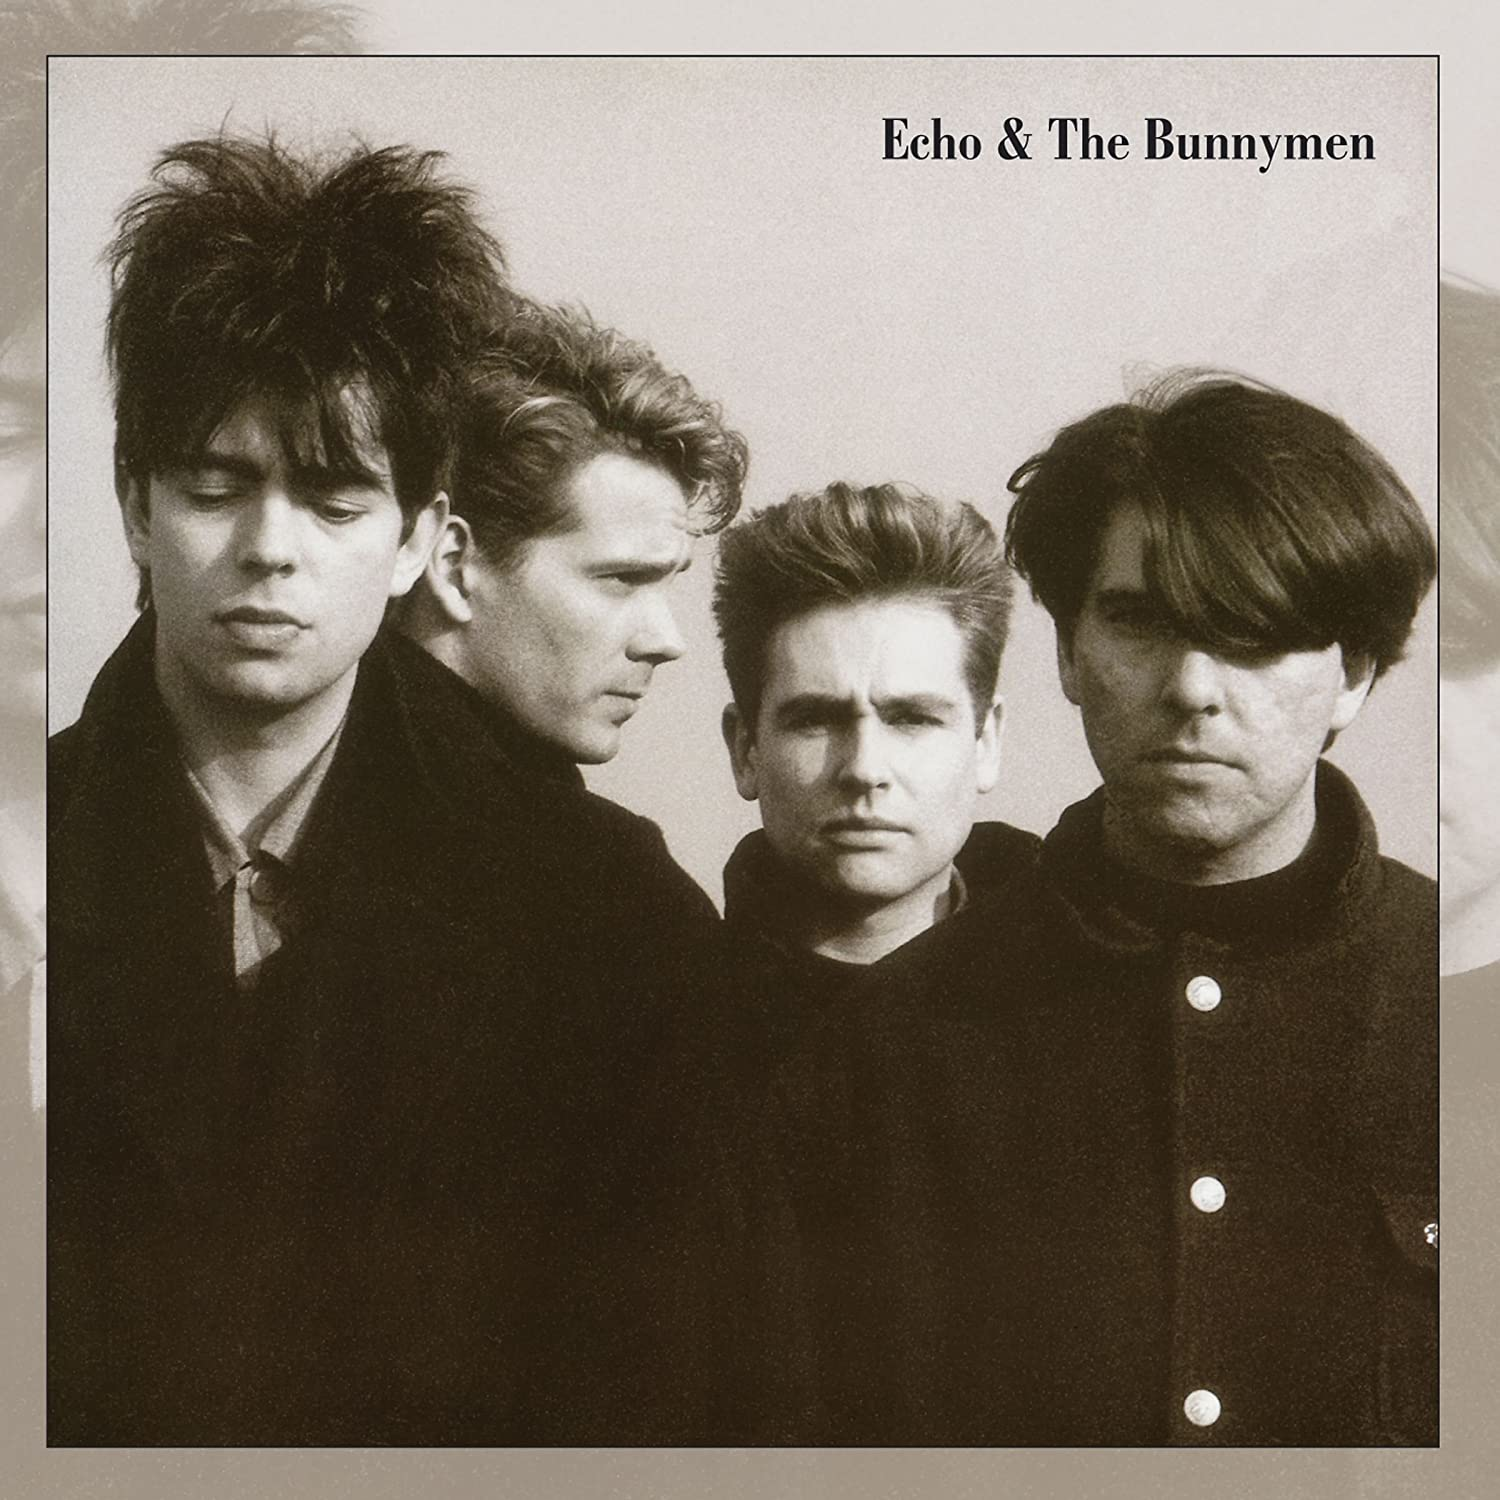 Echo & The Bunnymen - Echo & The Bunnymen - Amazon.com Music